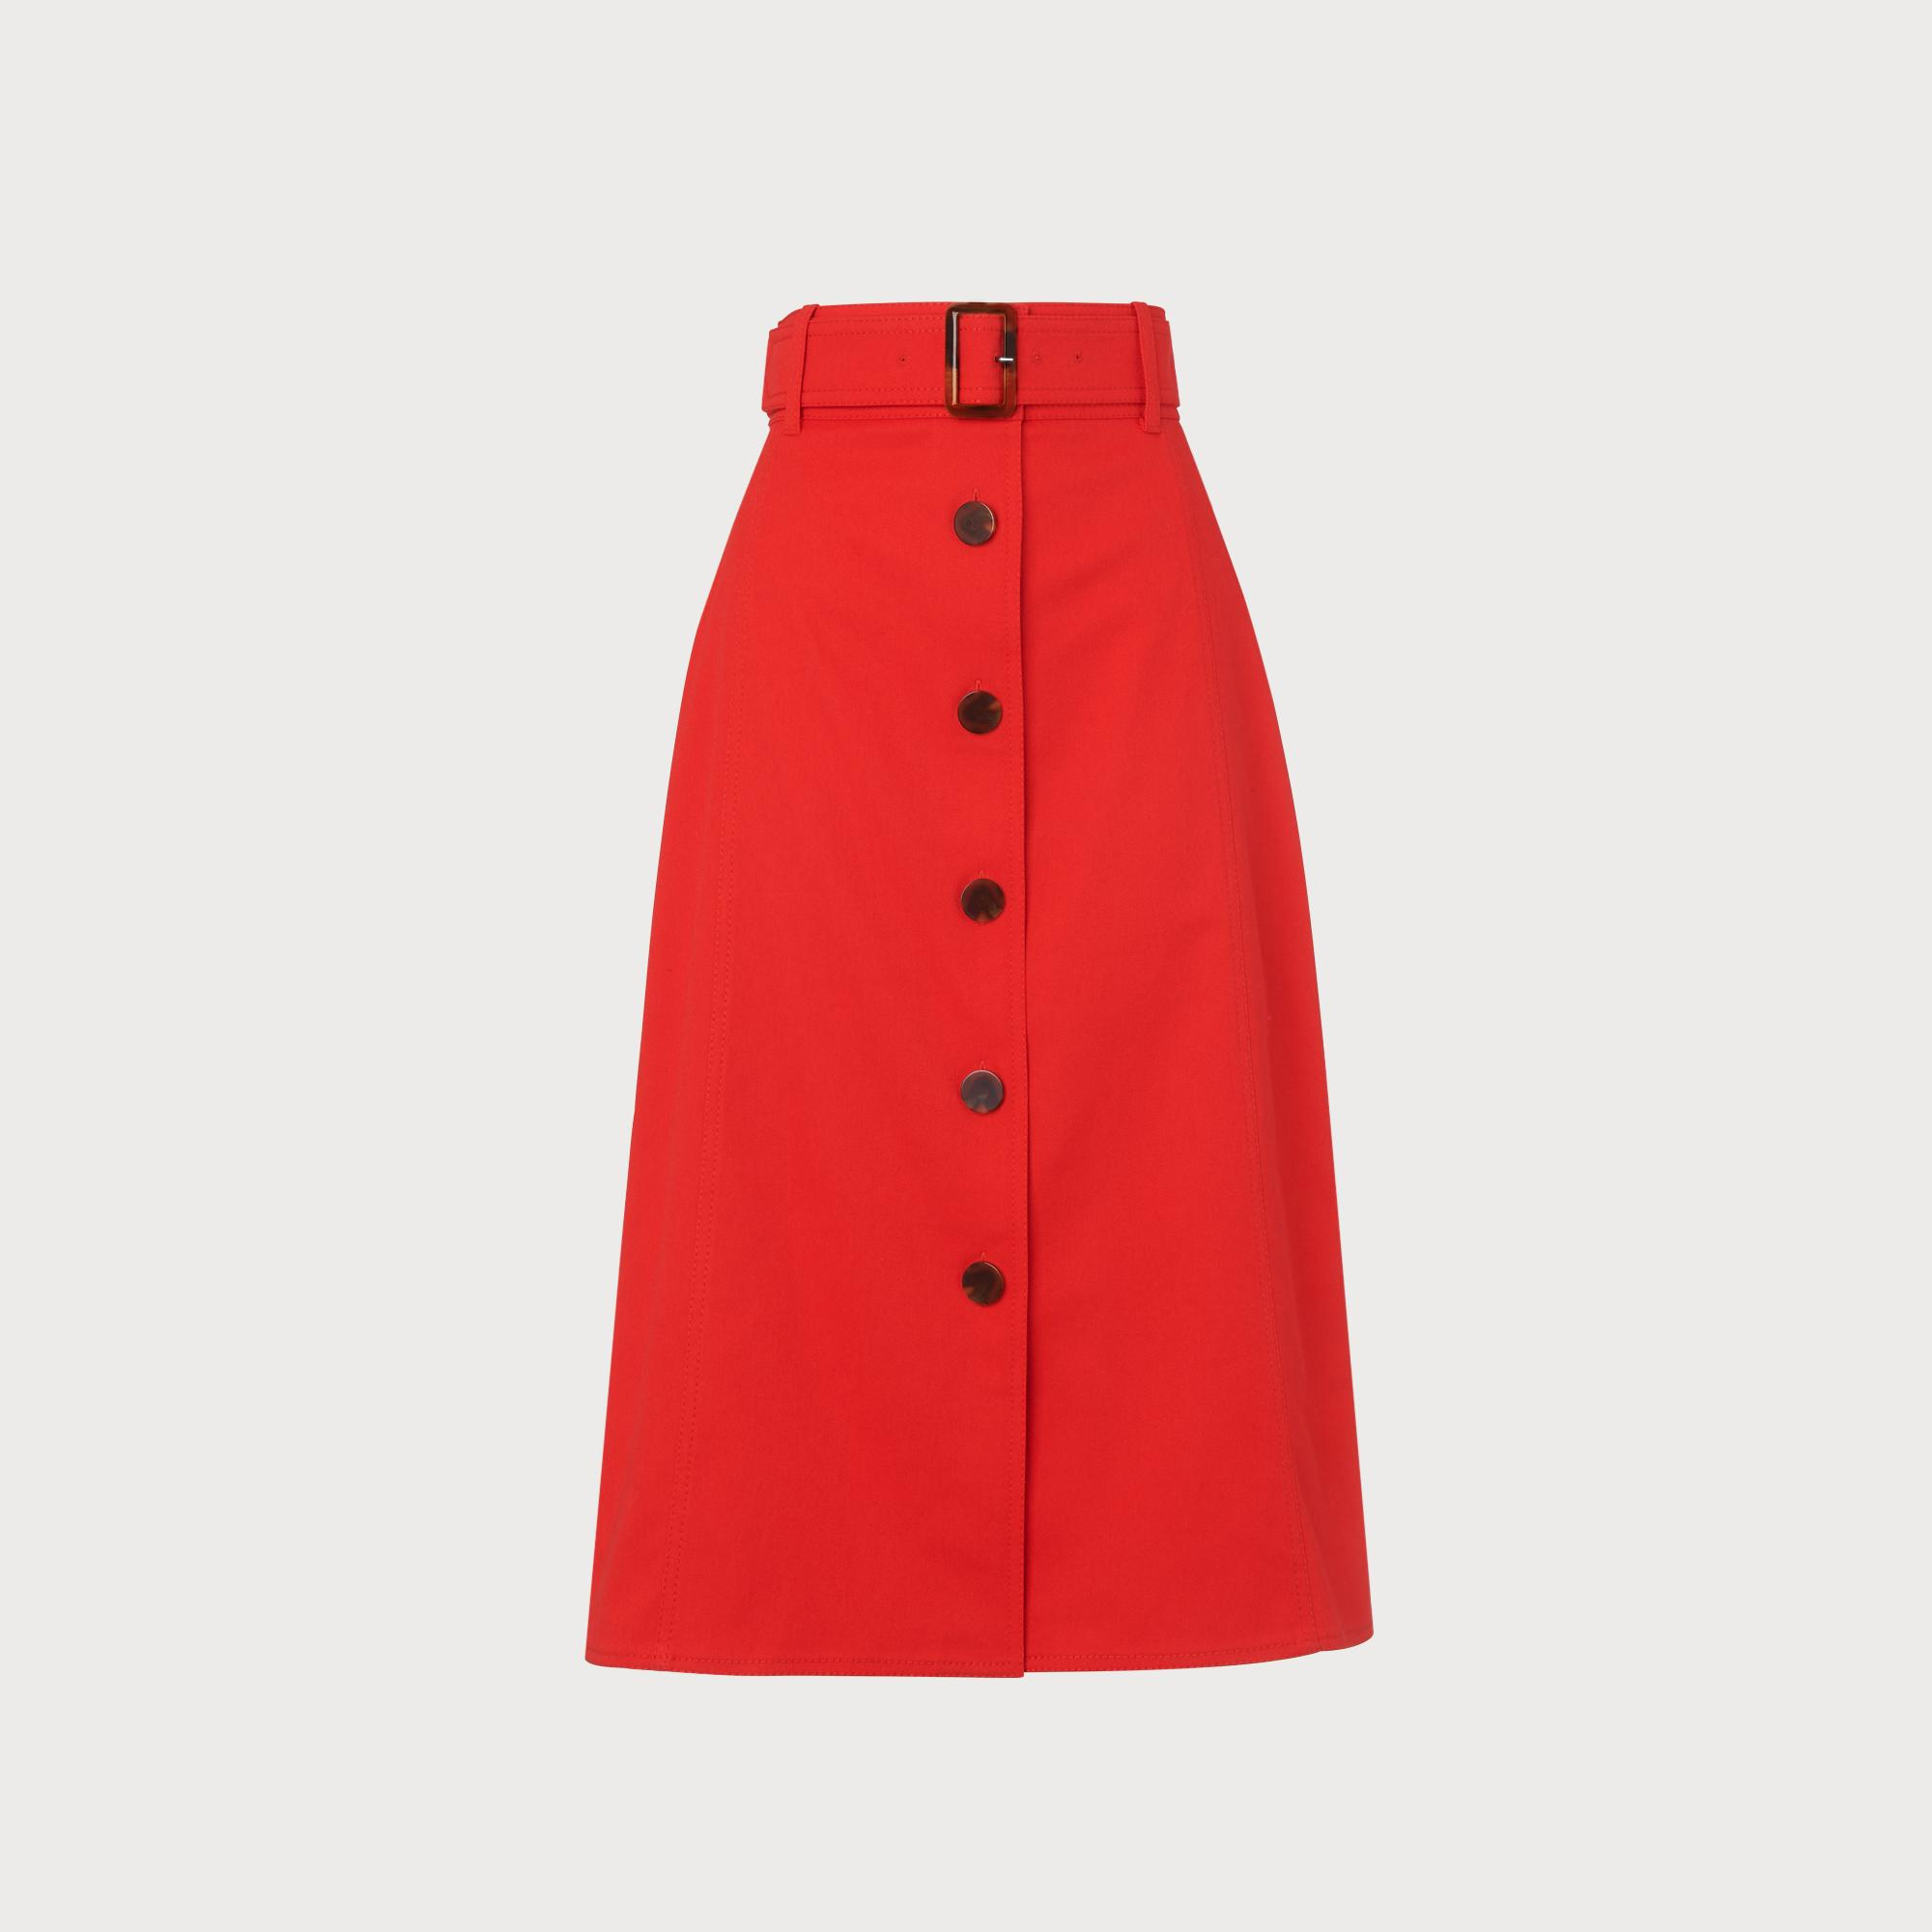 faa947bde50 Oda Red Cotton Skirt | Clothing | L.K.Bennett